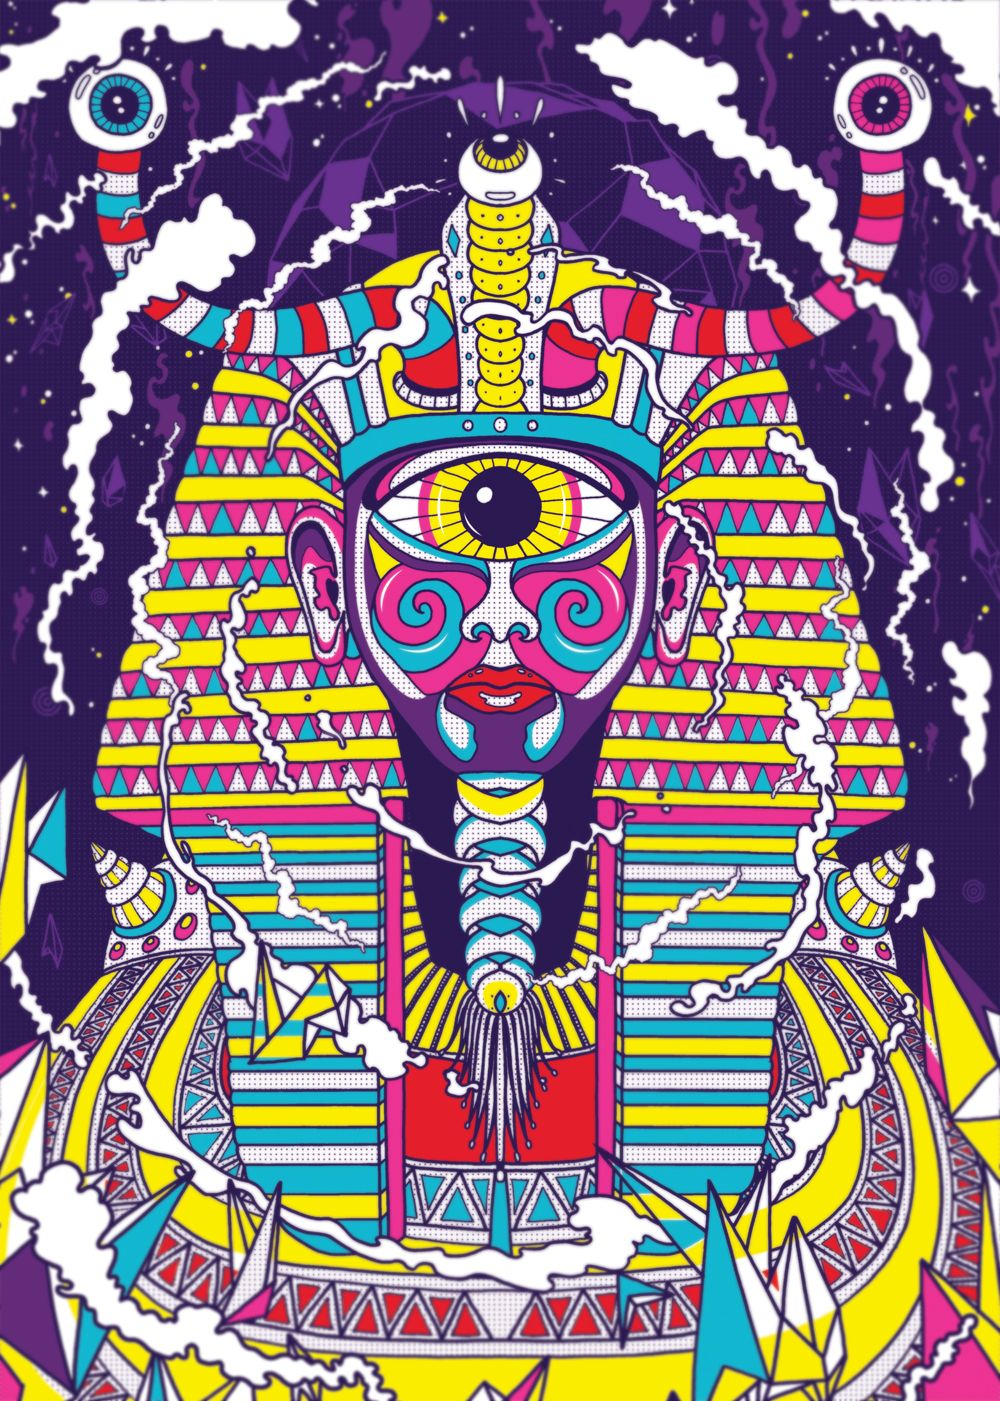 b4b6d07ee Photoshop tutorial: Create super psychedelic artwork Ollie Munden explains  how to create 70s-inspired poster art using sketching and multi-layering ...